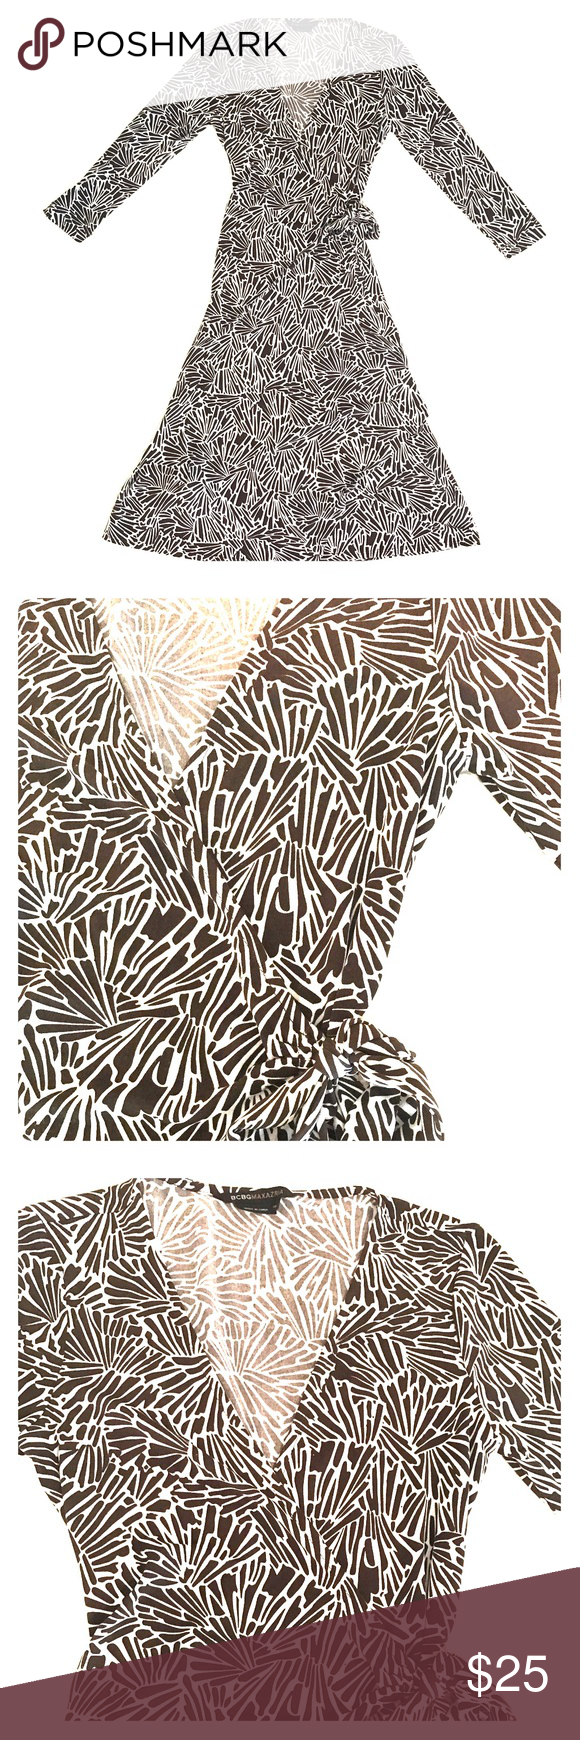 """BCBGMAXAZRIA wrap around dress Brown and white BCBGMAXAZRIA wrap around dress. 3/4"""" sleeves; knee length. Has been worn a few times but still in good condition! Great for a dressy night out to dinner or around the town! BCBGMaxAzria Dresses"""